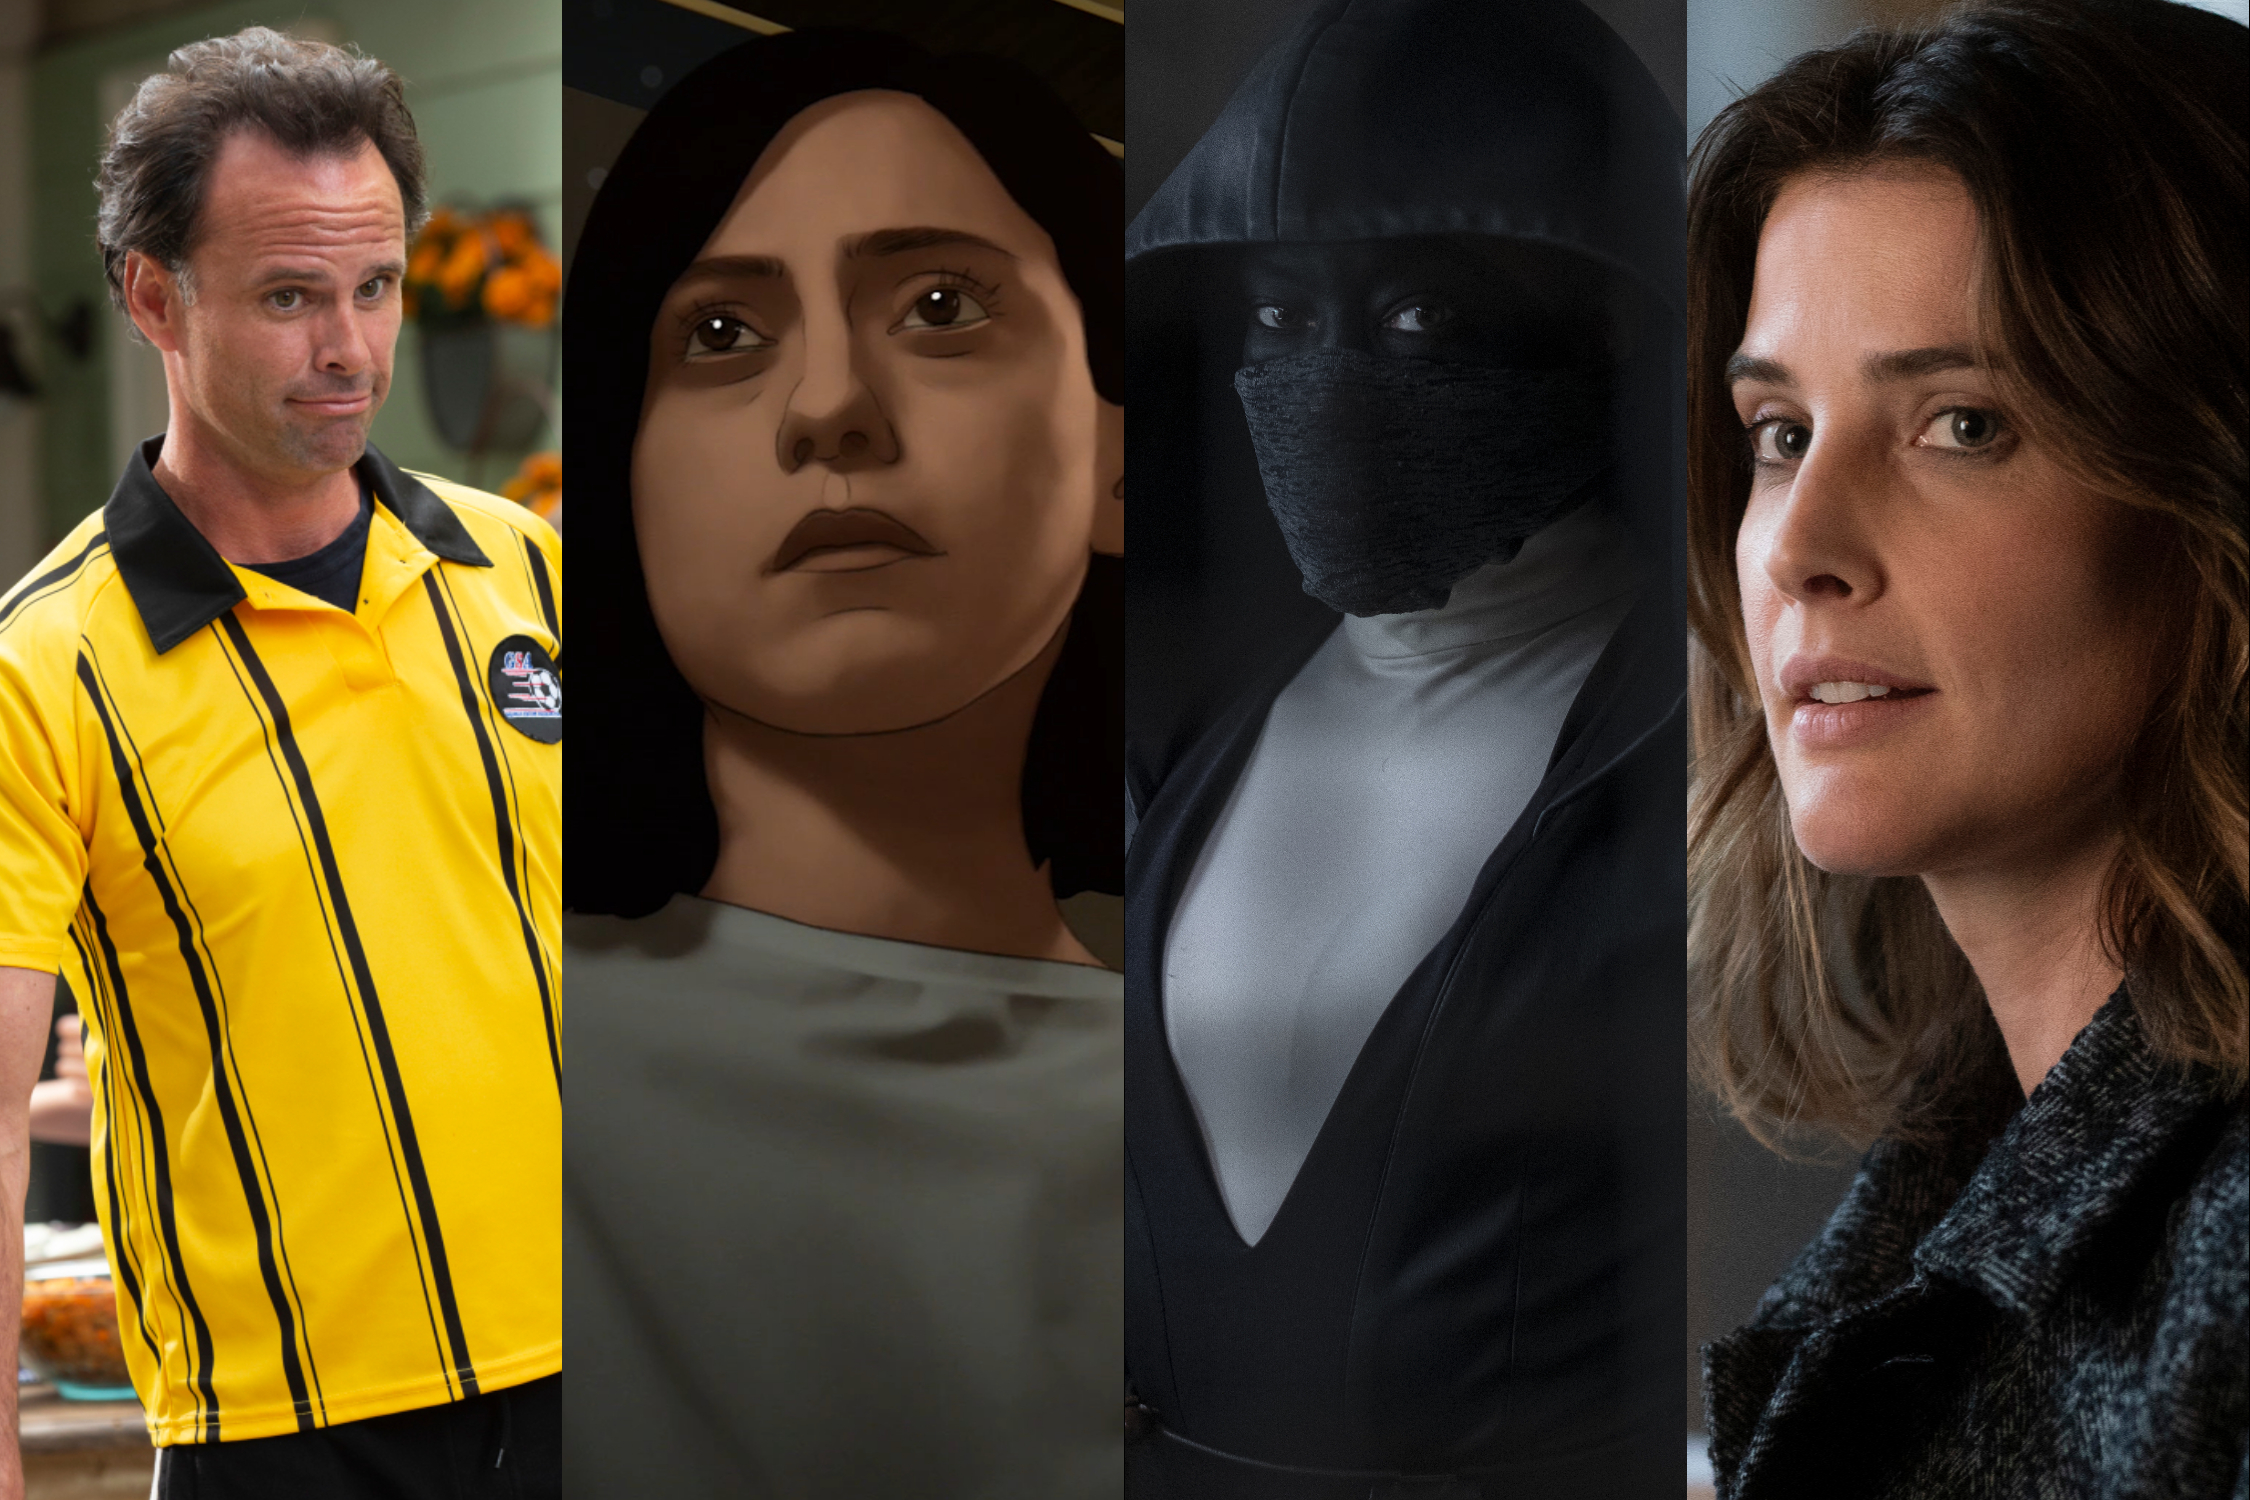 Fall TV is the best it's been in a decade. Here are 15 new shows to watch.